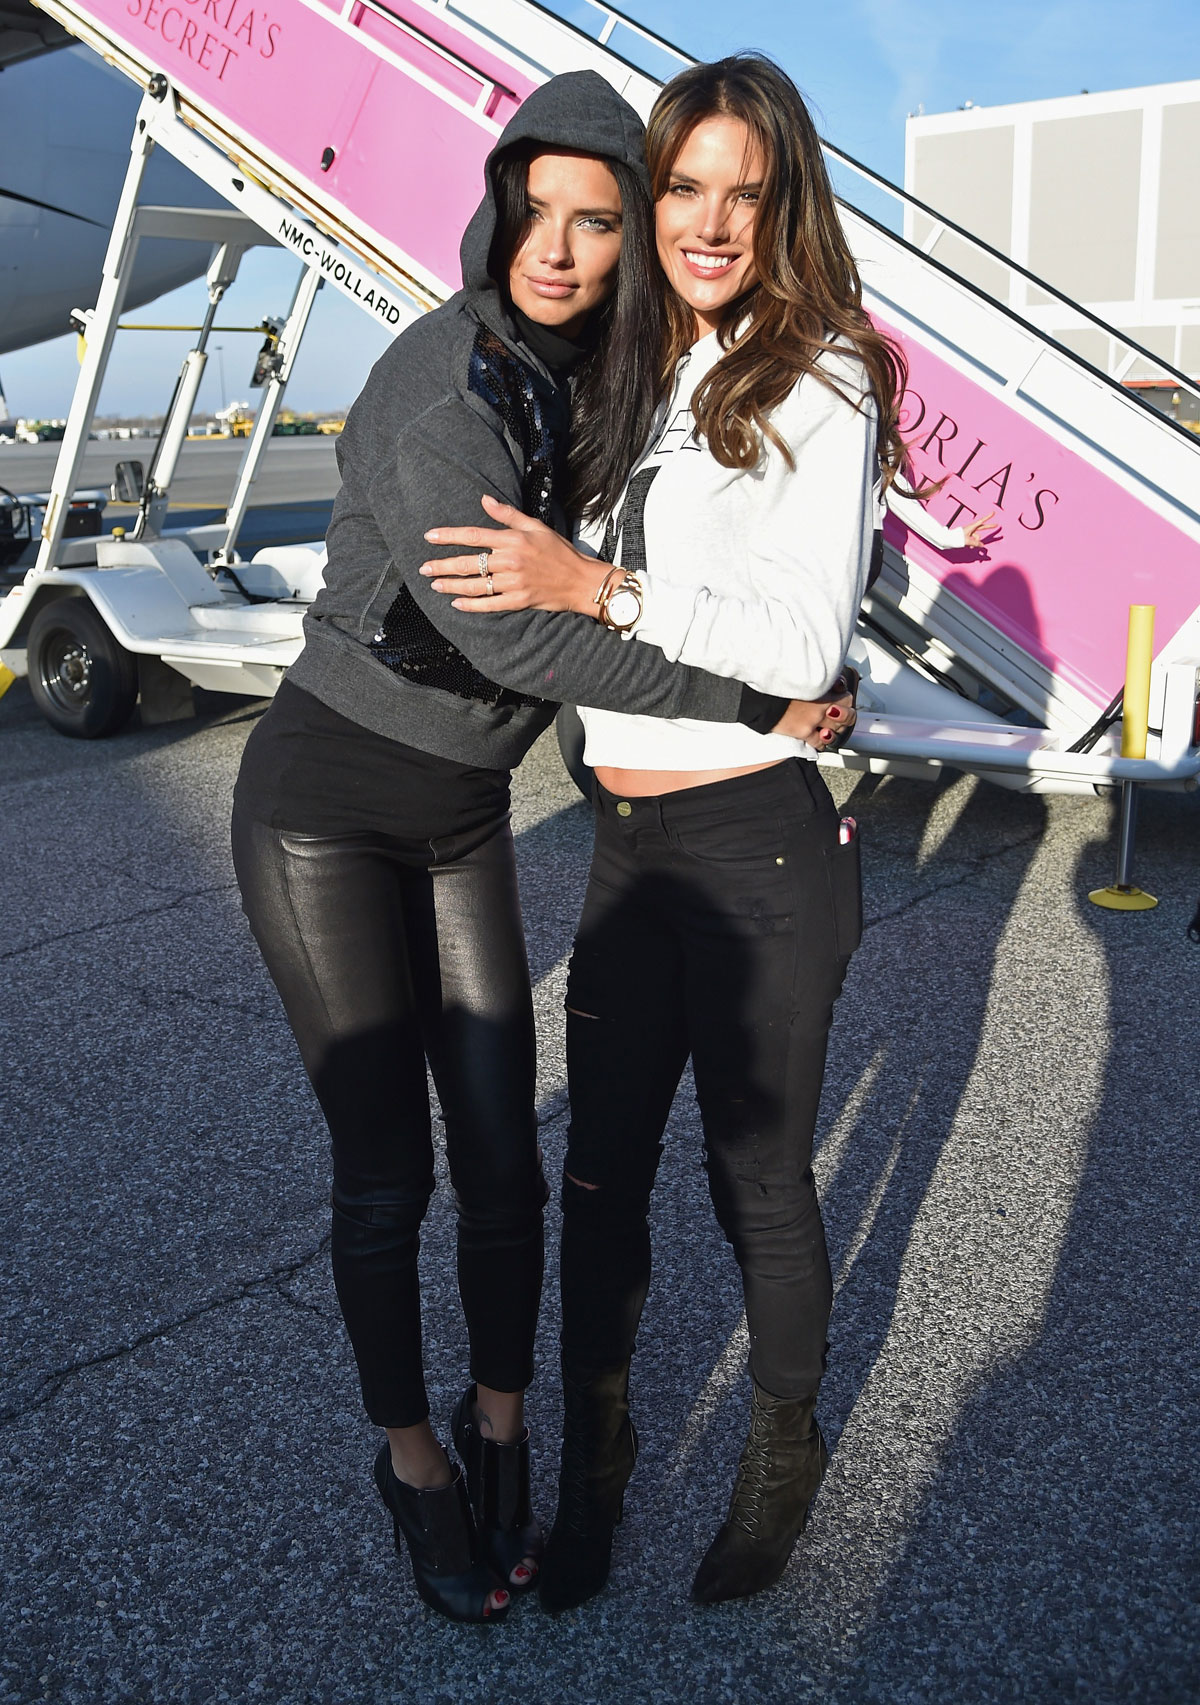 Adriana Lima departs for London for the 2014 Victoria's Secret Fashion Show